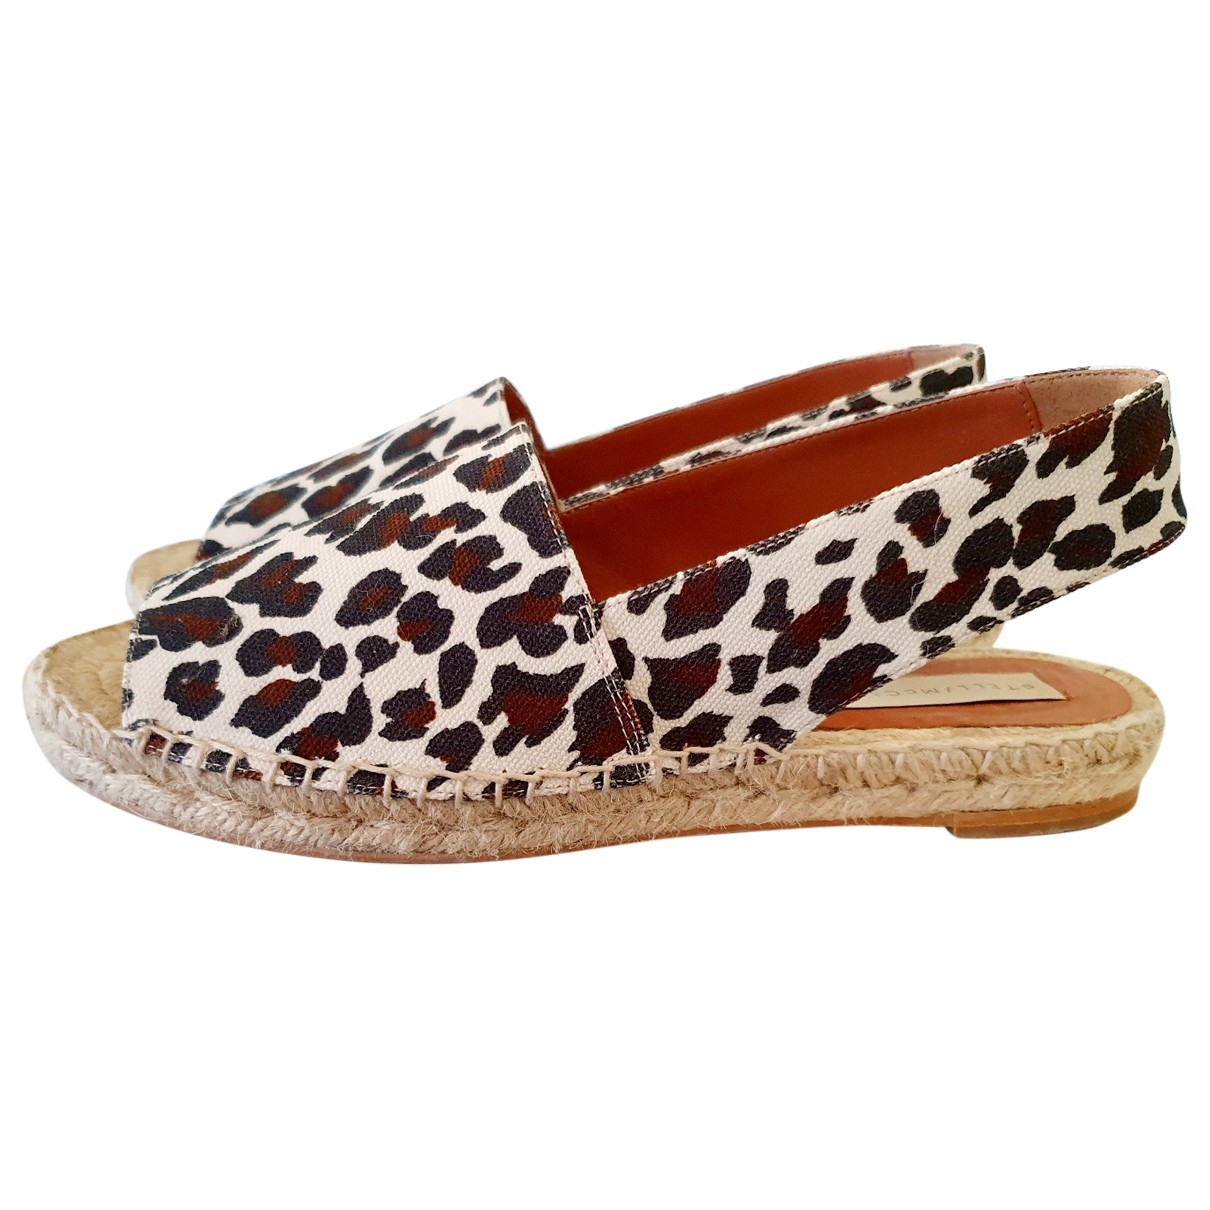 Stella Mccartney \N Espadrilles in  Beige Leinen